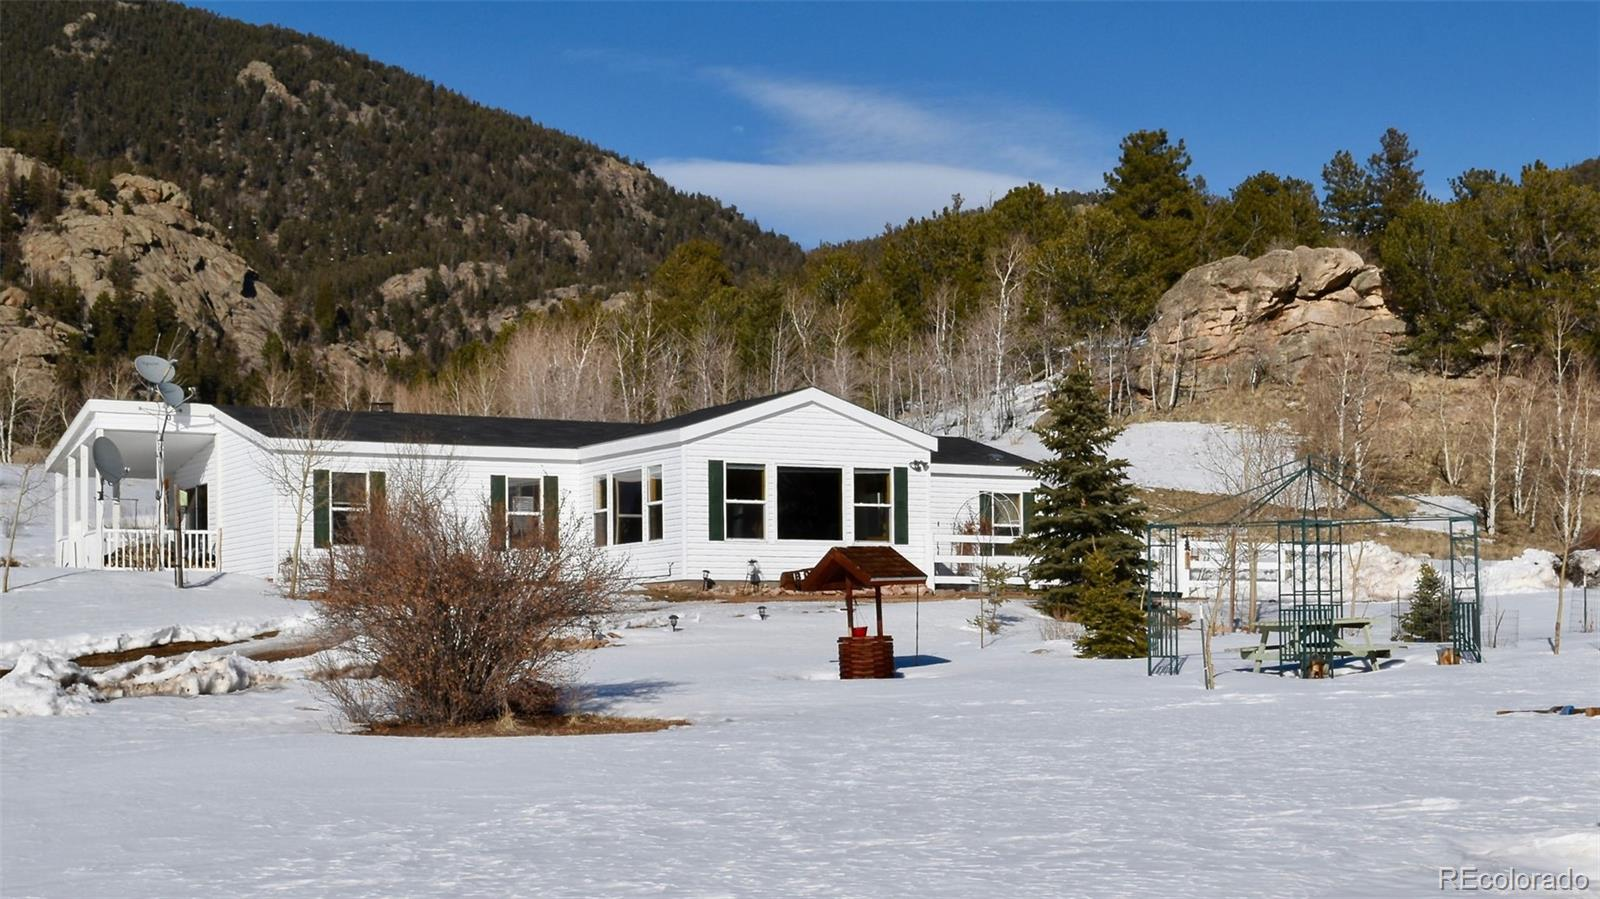 Welcome to your Authentic Colorado Lifestyle! Pride of original ownership is evident throughout! (Property is being sold furnished except for Master Bedroom and Sunroom furniture.) Beautiful ranch-style home with amazing 360 views w/ rock outcroppings. Tiara subdivision is tucked away just off paved roads where you will enjoy views of 39 Mile Mountain, 11 Mile Reservoir, the Sangre de Cristos Range, Collegiate Peaks & Spinney Mountain as you make your way to your cozy mountain retreat! You will love the warm and inviting sunroom! New carpet throughout! Bring your ATVs, RVs and boats! Lots of space for parking your toys! Hiking and OHV trails nearby. Imagine being 5 minutes from 11 Mile Reservoir where year around fishing is the norm! Wildlife abounds with Rocky Mountain Big Horn Sheep and an occasional donkey whose ancestors came from the gold mines of Cripple Creek & Victor! Keep your camera and binoculars nearby as wild turkey, bear and deer also frequent the area. The oversized garage has clear panels that allow natural light. You will love the abundance of storage, shelving, workbench and refrigerator all of which are included. This beautiful mountain rancher can be your retirement, seasonal or full-time residence. Perfect VRBO or Airbnb! Live the Life You Have Imagined!